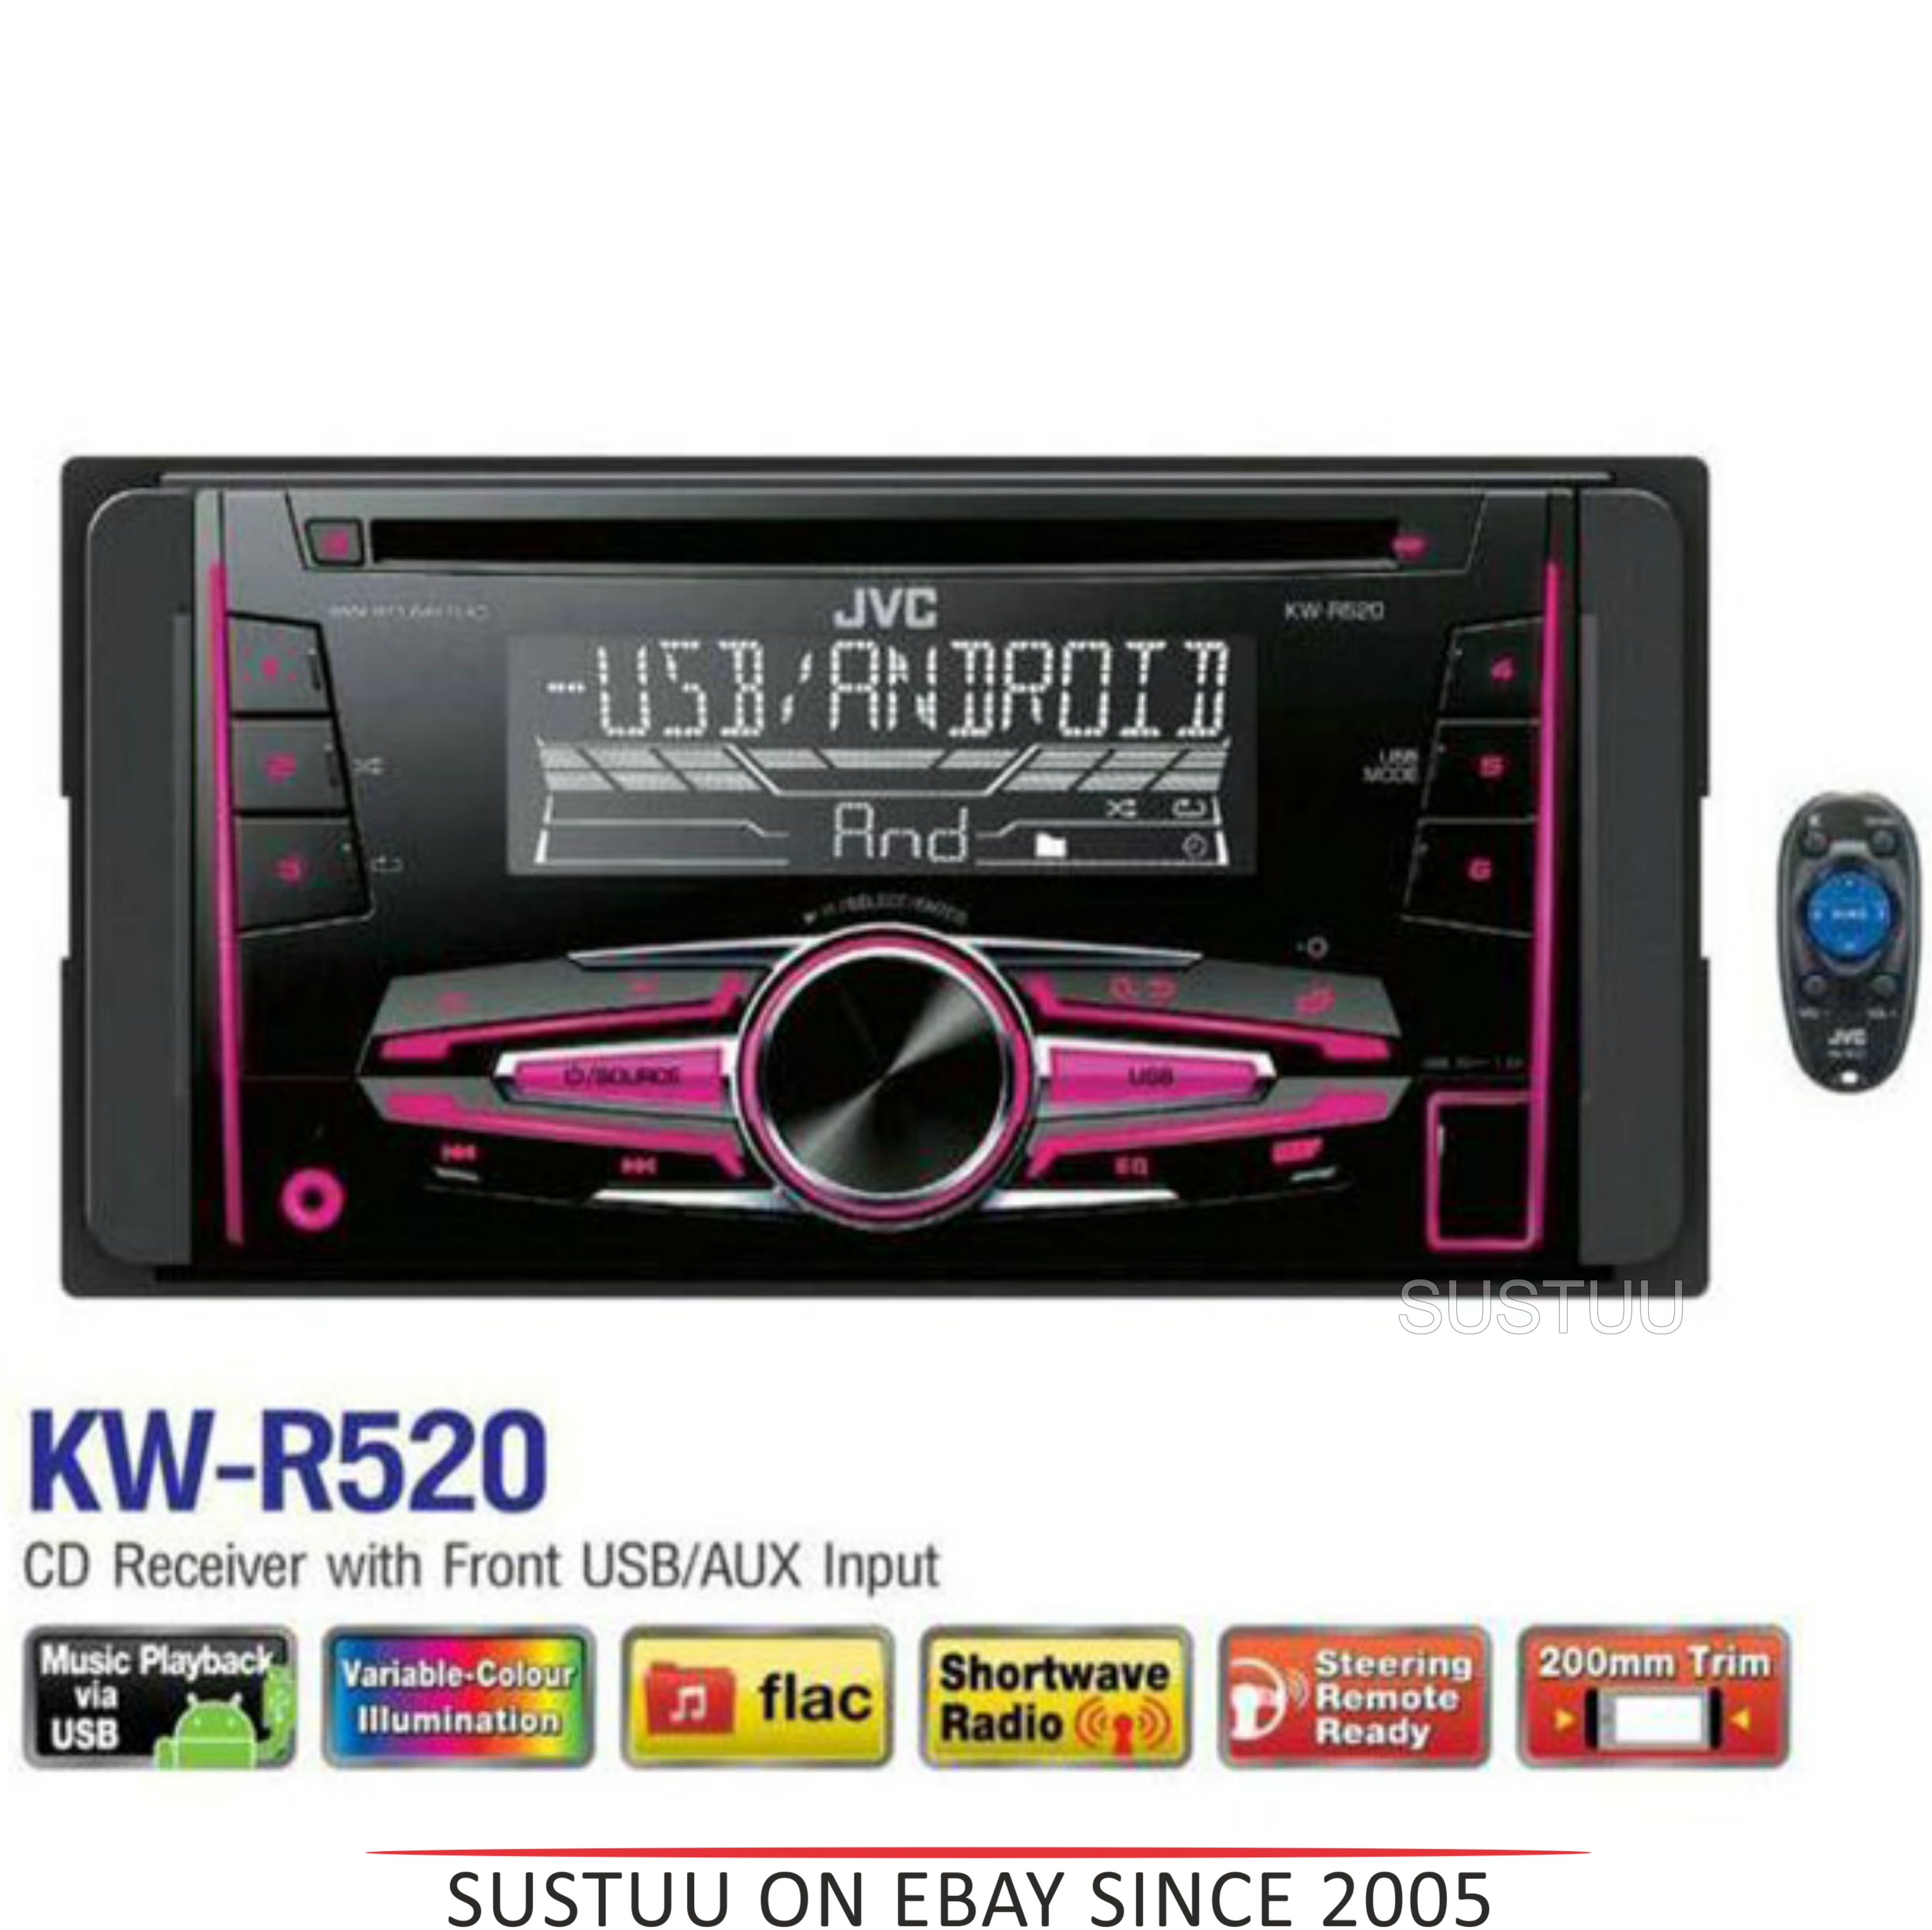 jvc kw r520 car stereo double din cd radio mp3 flac usb. Black Bedroom Furniture Sets. Home Design Ideas